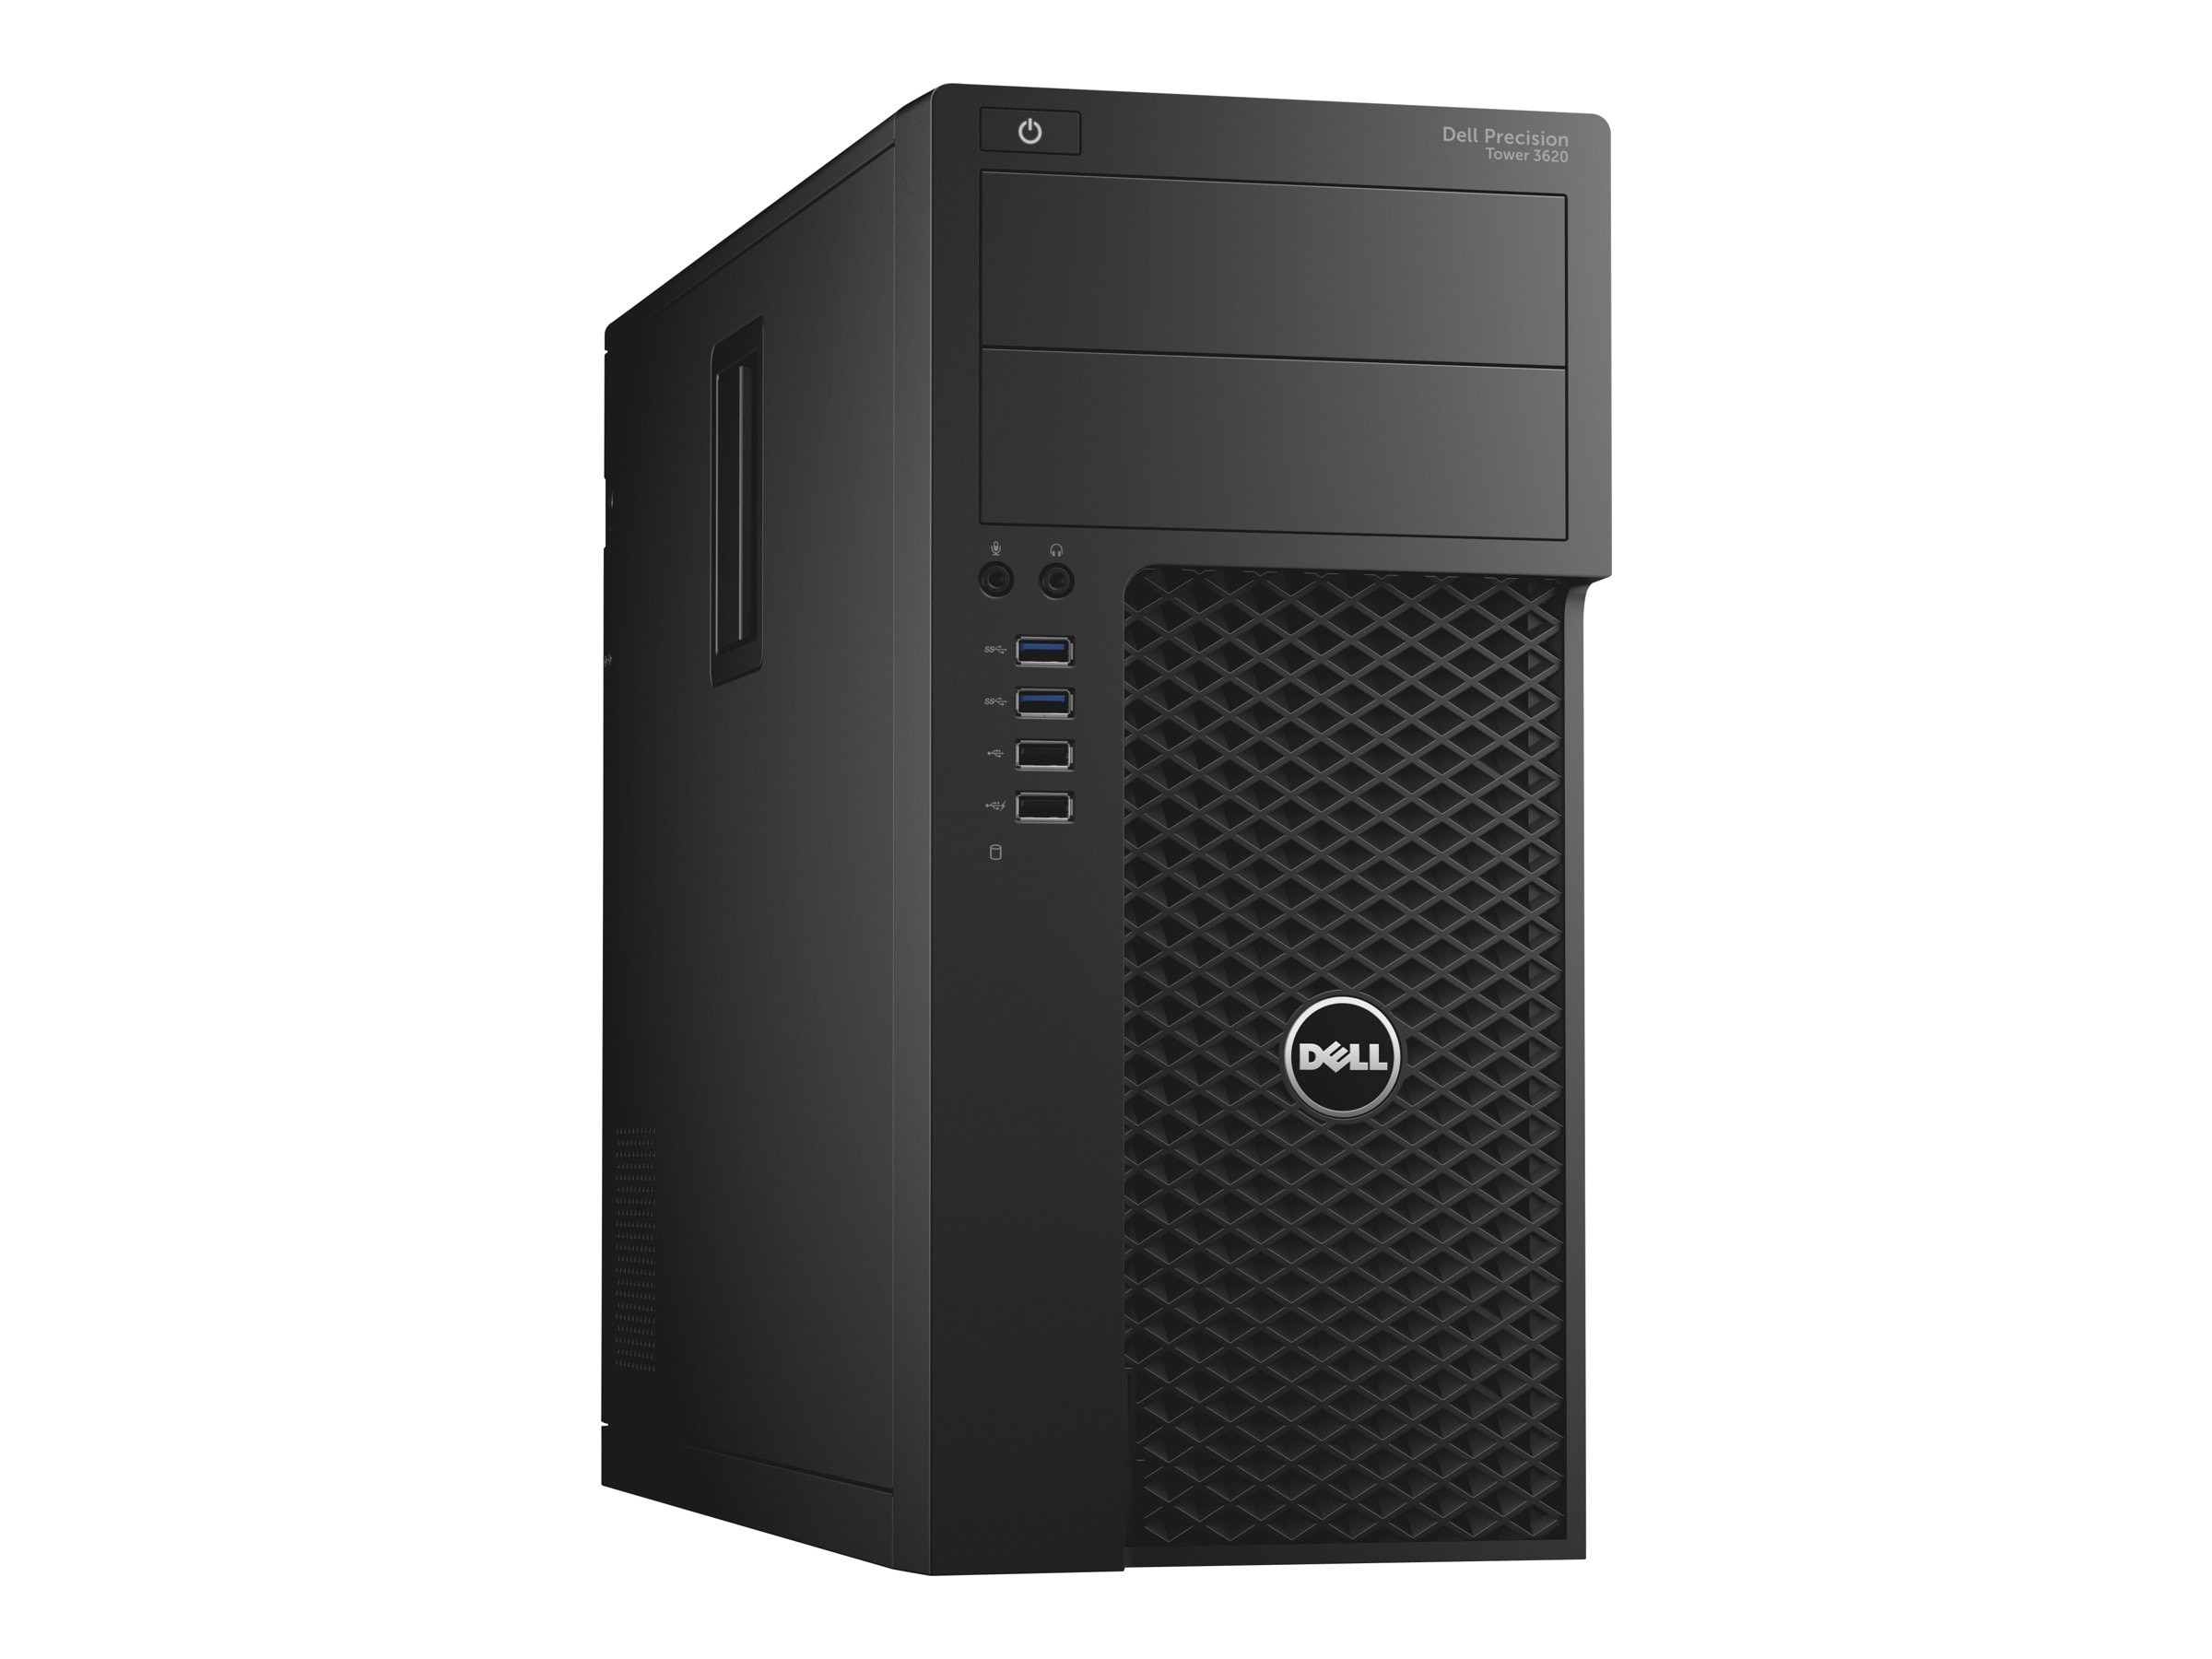 Dell Precision 3620 3.5GHz Xeon Microsoft Windows 7 Professional 64-bit Edition   Windows 10 Pro, 3RKNV